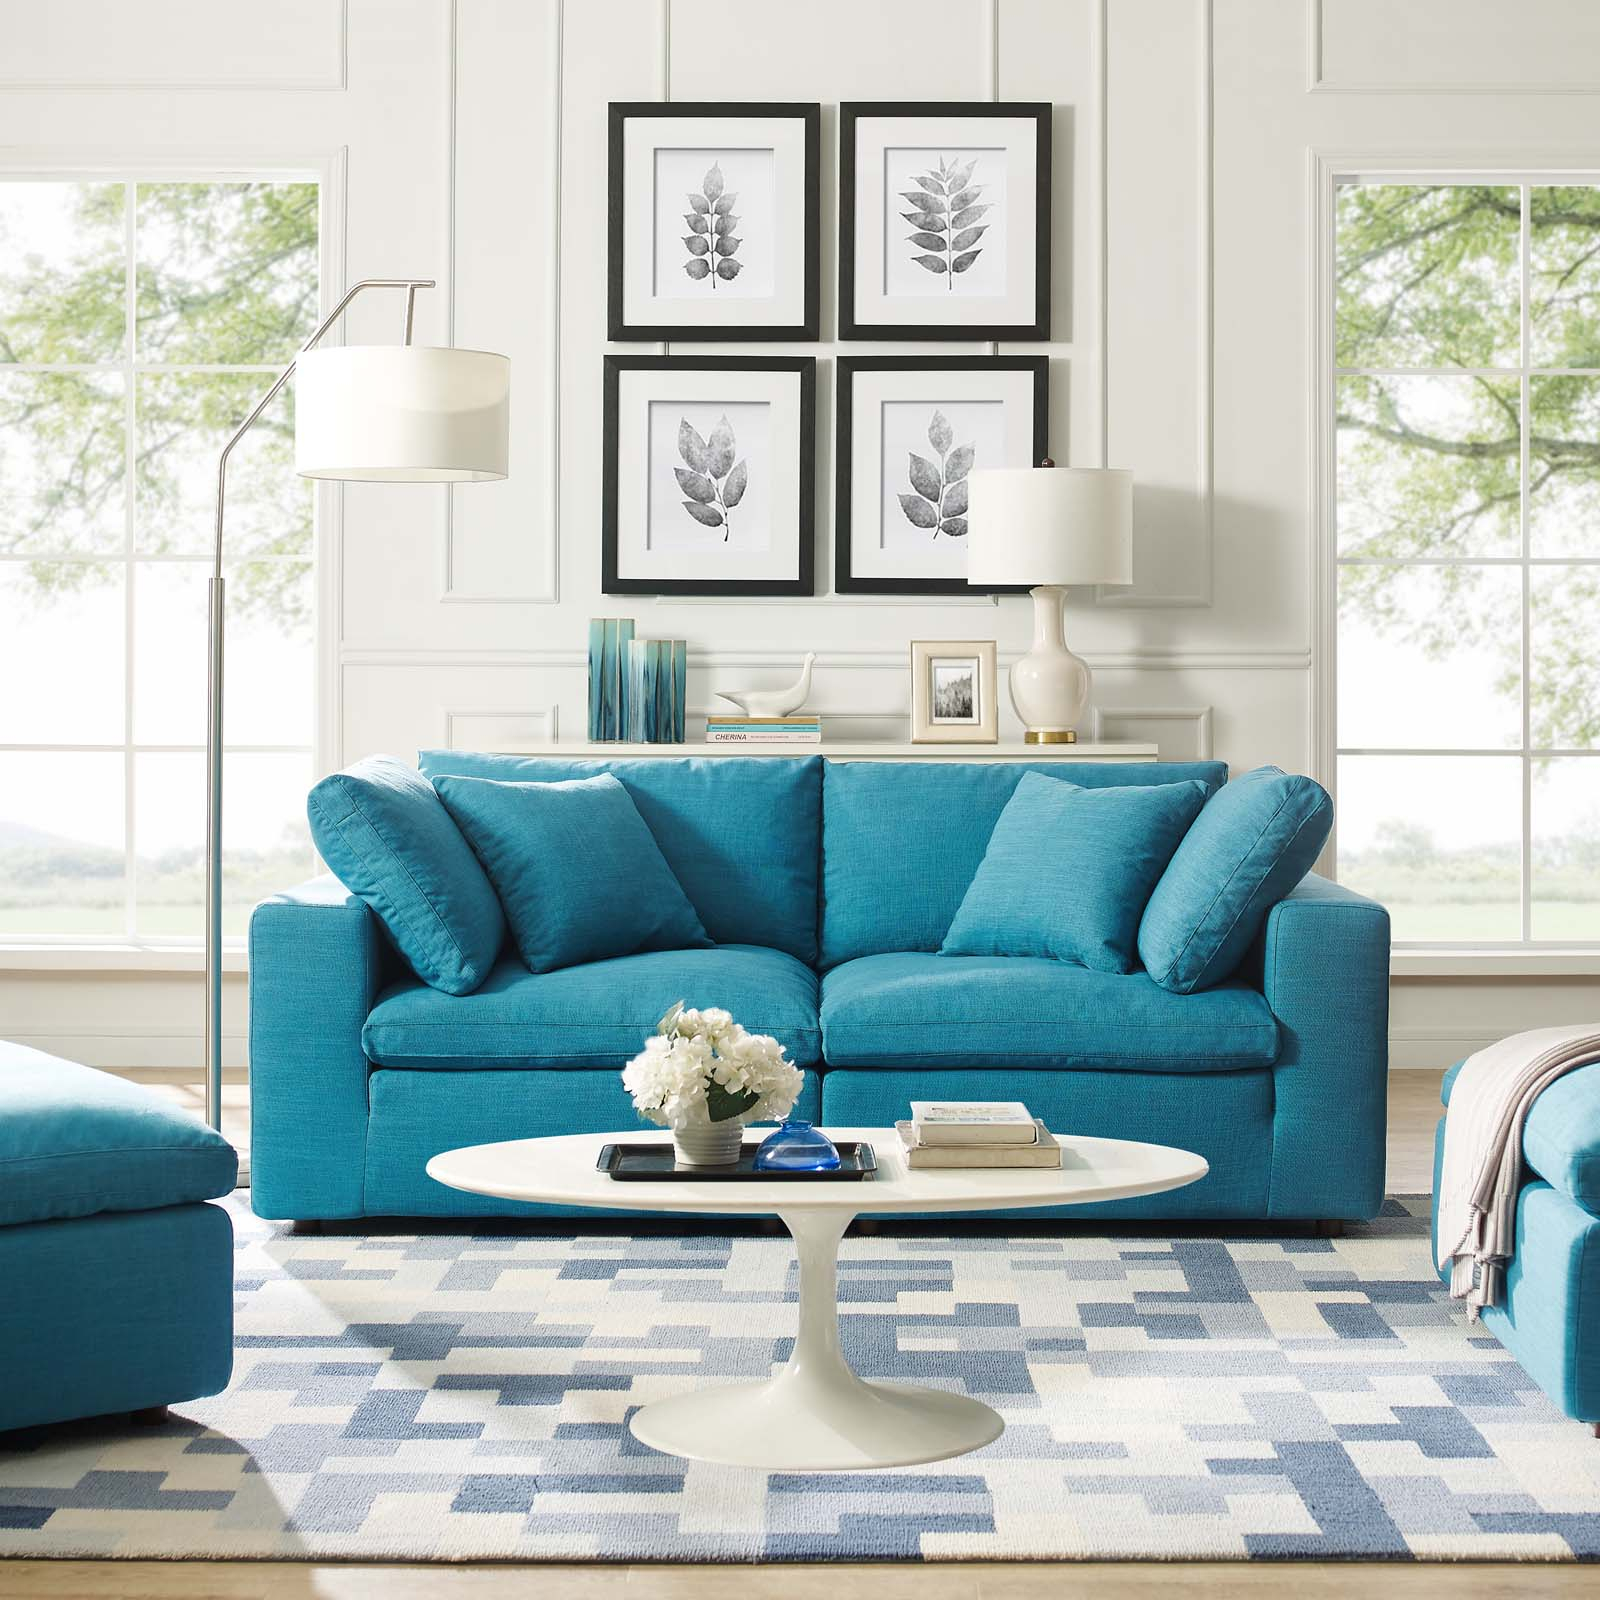 Commix Down Filled Overstuffed 2 Piece Sectional Sofa Set With Regard To Down Filled Sectional Sofas (View 1 of 15)